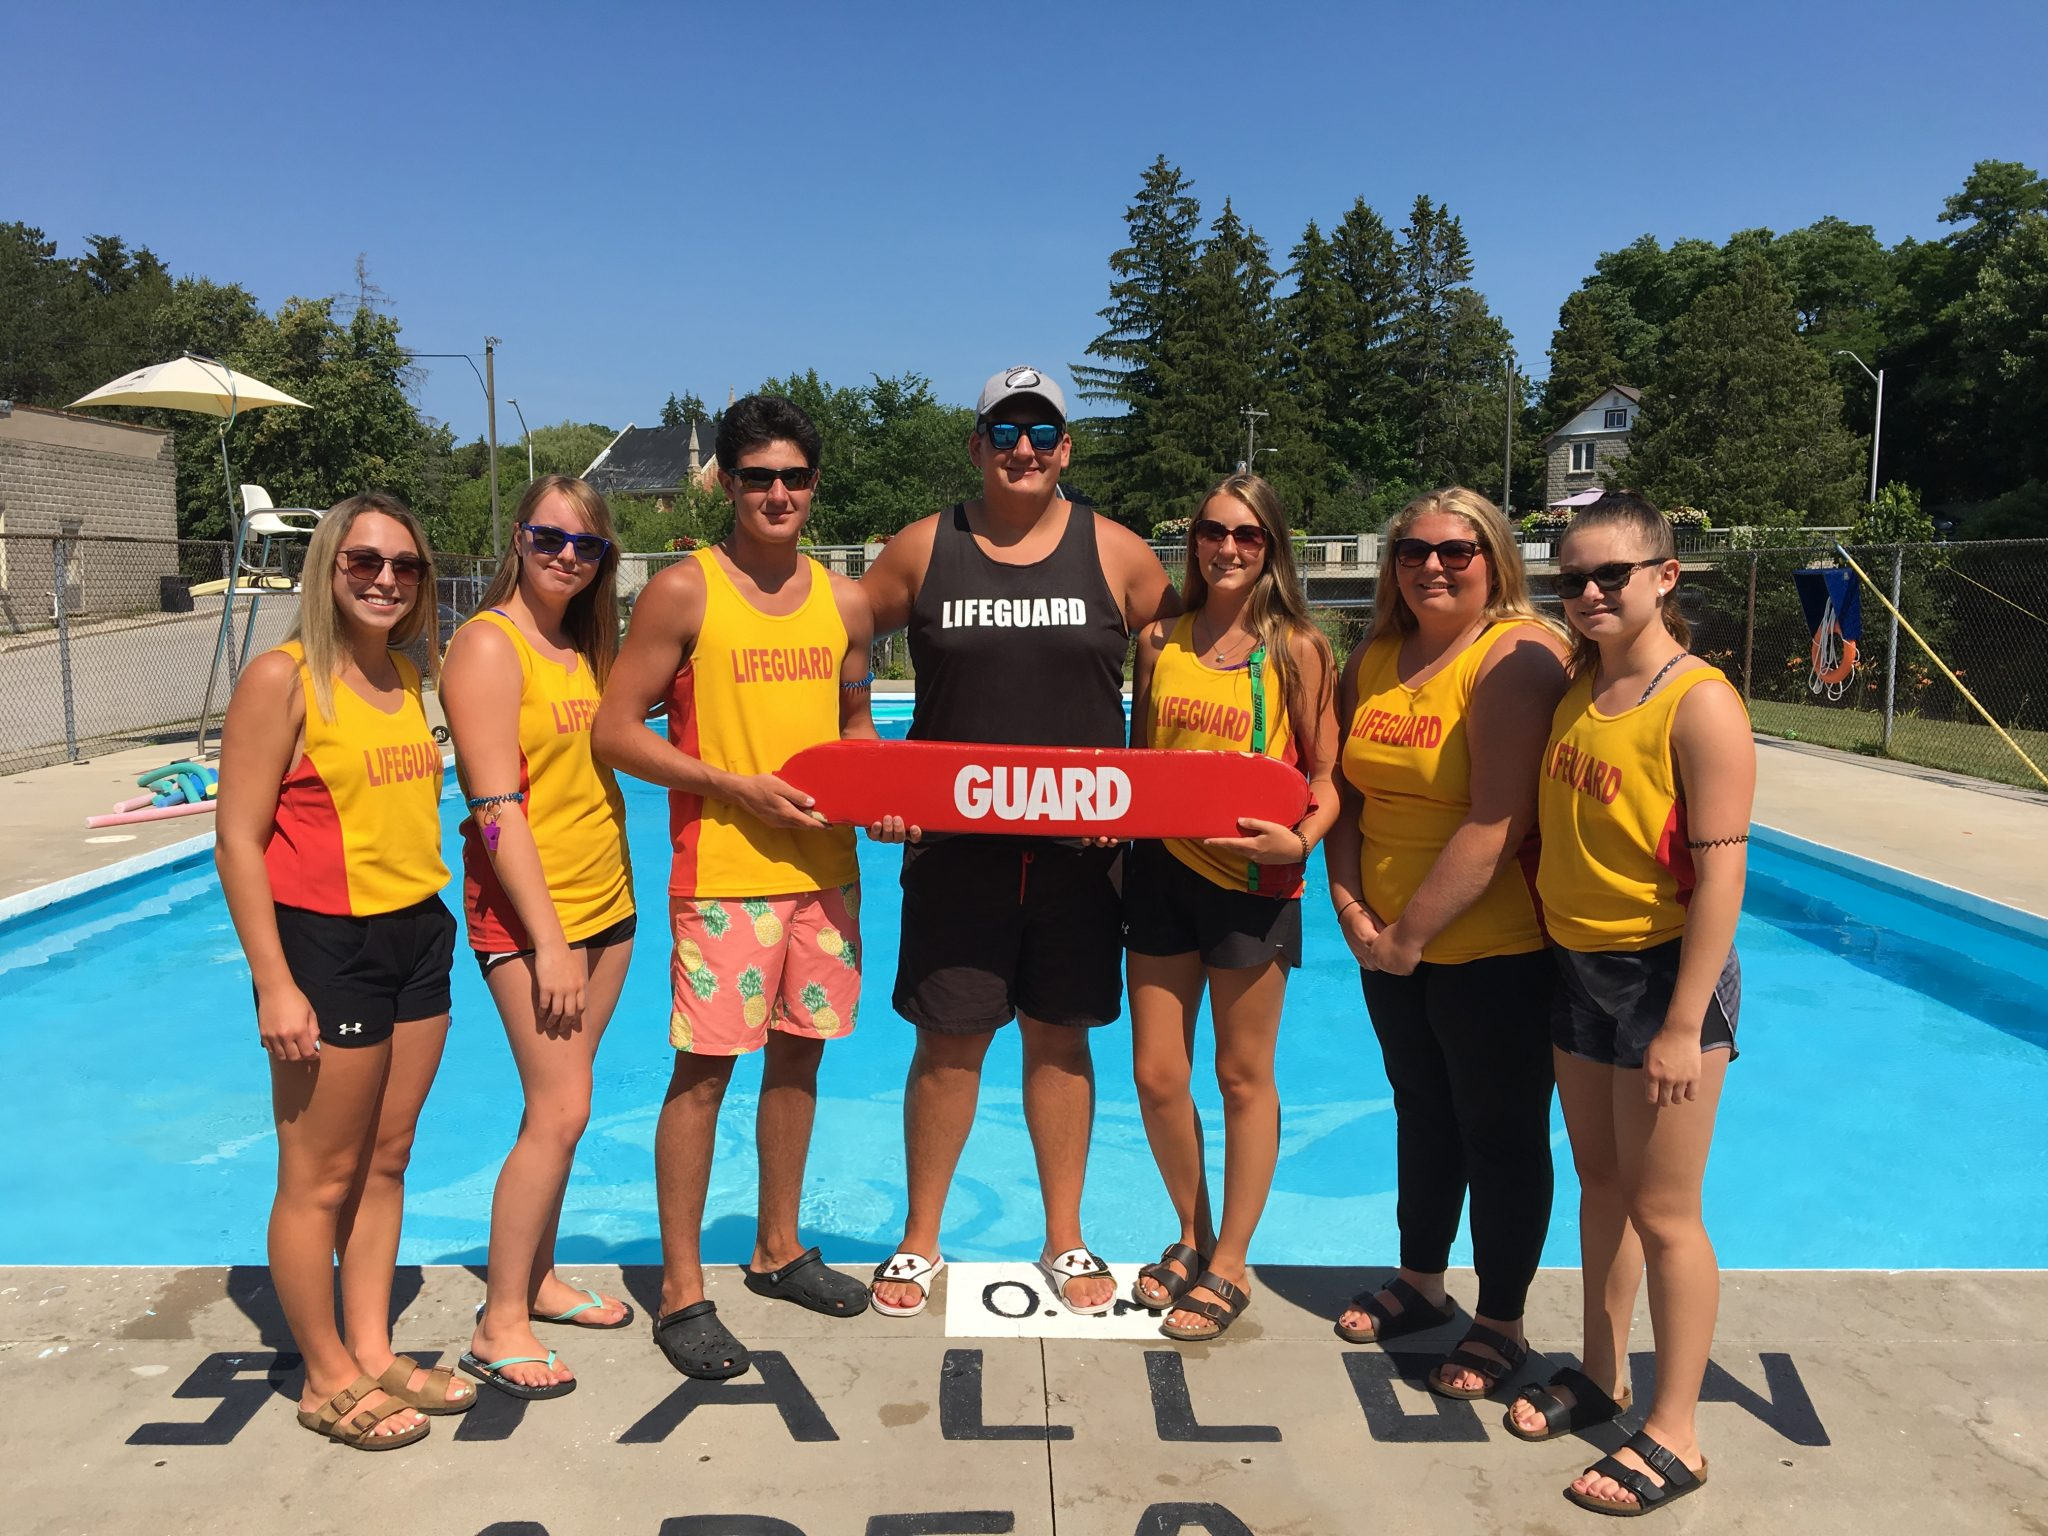 A group of lifeguards smile for the camera in front of an outdoor pool.